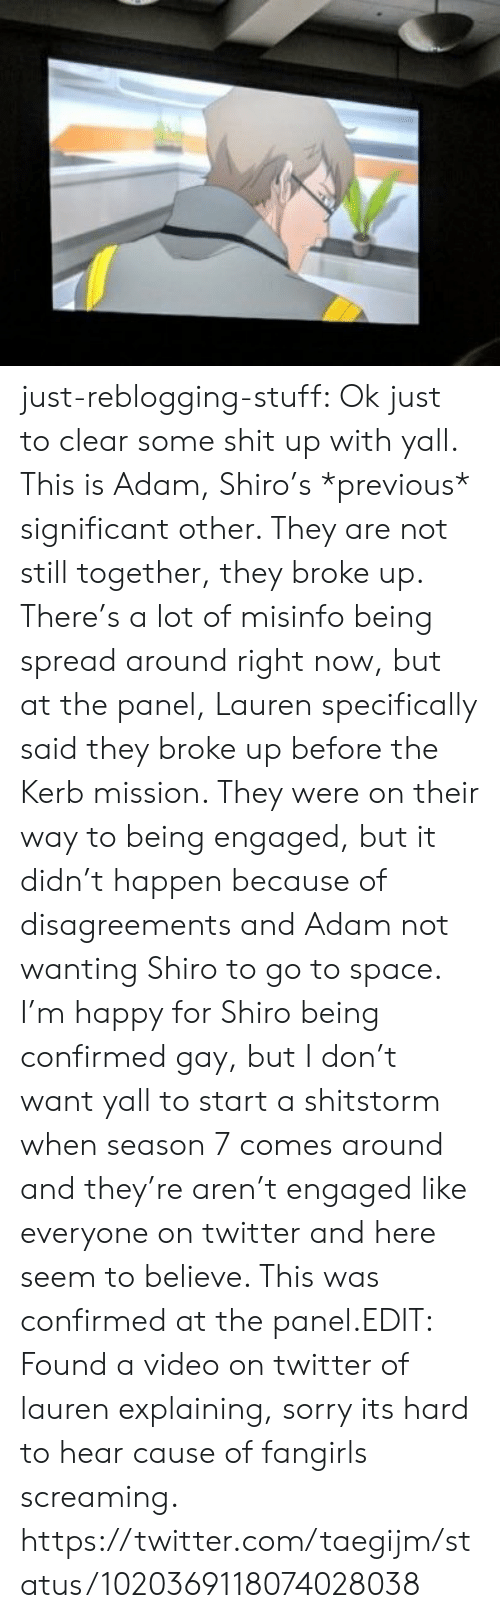 Shit, Sorry, and Target: just-reblogging-stuff:  Ok just to clear some shit up with yall. This is Adam, Shiro's *previous* significant other. They are not still together, they broke up. There's a lot of misinfo being spread around right now, but at the panel, Lauren specifically said they broke up before the Kerb mission. They were on their way to being engaged, but it didn't happen because of disagreements and Adam not wanting Shiro to go to space. I'm happy for Shiro being confirmed gay, but I don't want yall to start a shitstorm when season 7 comes around and they're aren't engaged like everyone on twitter and here seem to believe. This was confirmed at the panel.EDIT: Found a video on twitter of lauren explaining, sorry its hard to hear cause of fangirls screaming. https://twitter.com/taegijm/status/1020369118074028038